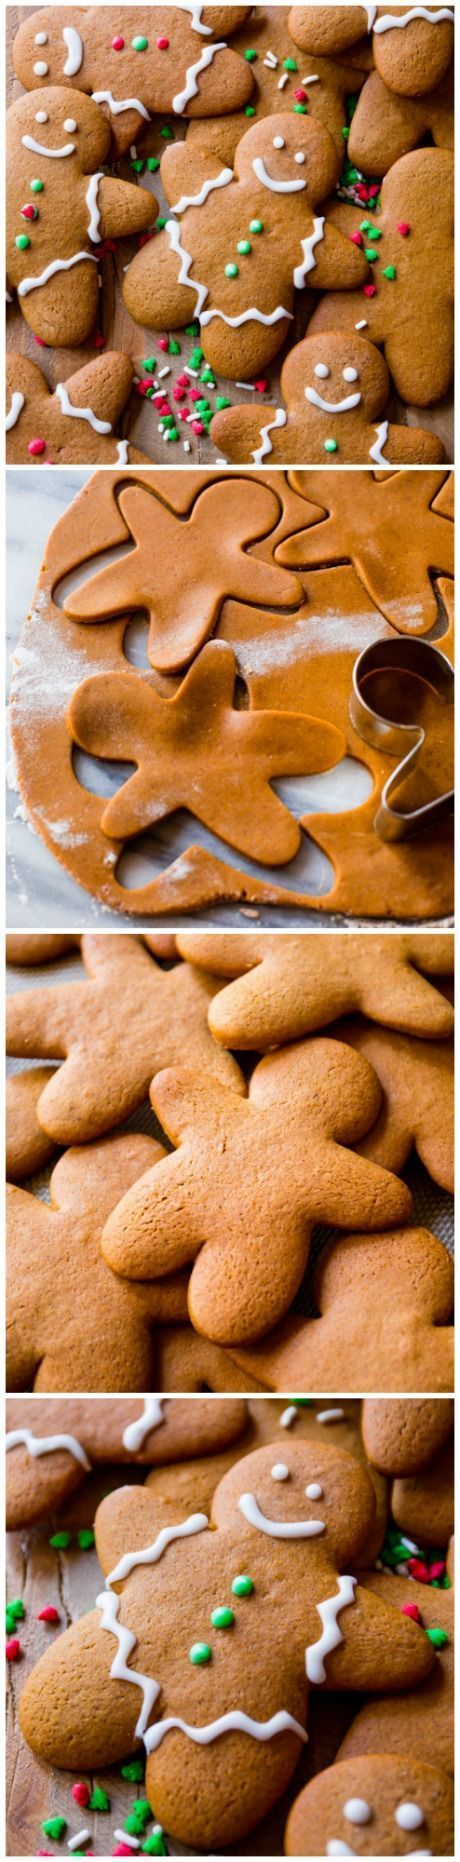 Here is my favorite gingerbread men recipe! Soft in the centers, crisp on the edges, perfectly spiced, molasses and brown sugar-sweetened holiday goodness. Recipe on sallysbakingaddiciton.com